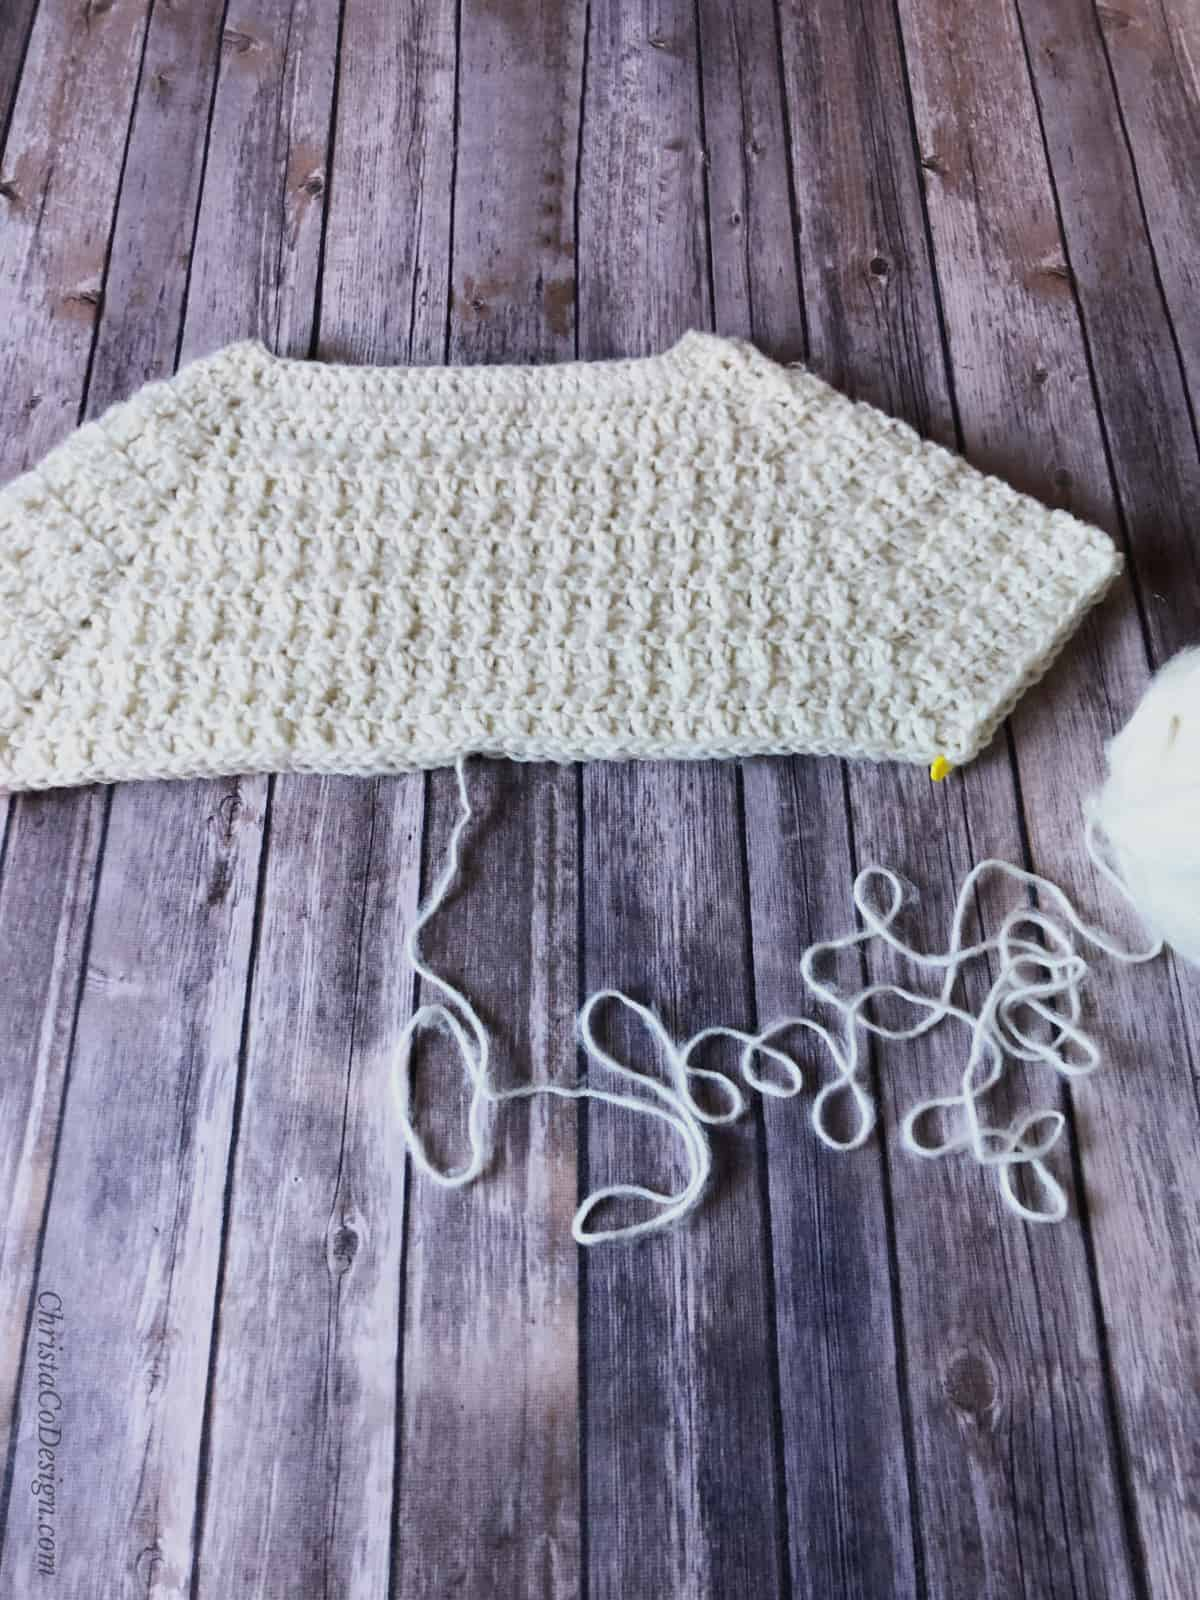 Divide raglan sweater free crochet pattern.